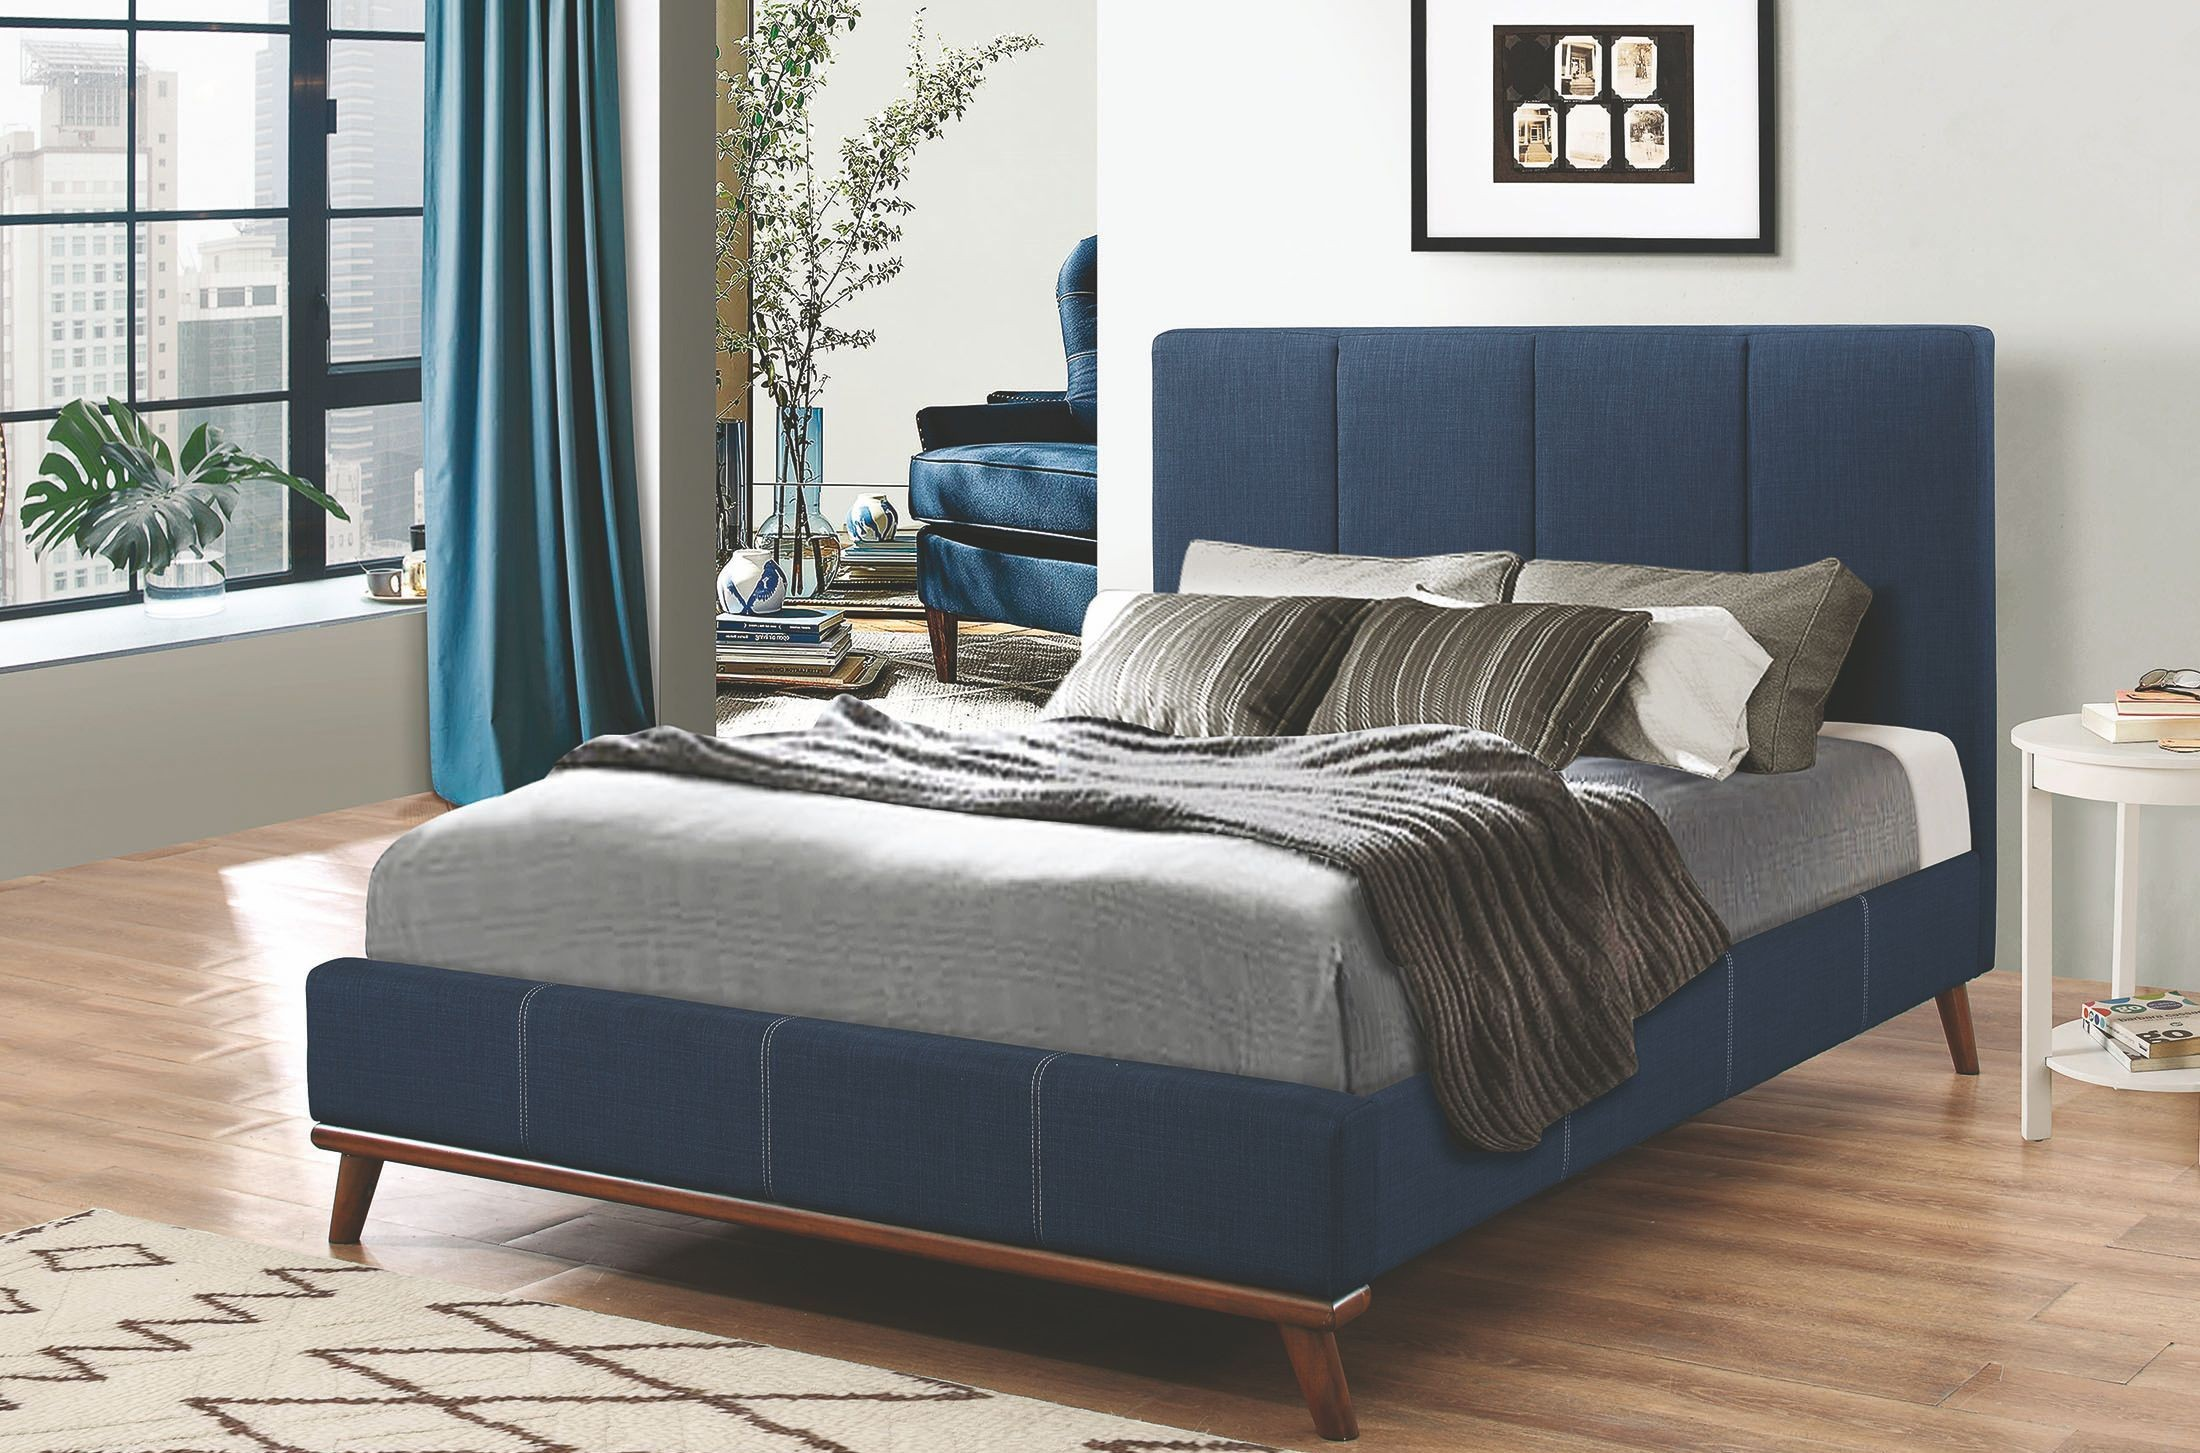 How To Make Headboards For King Size Beds Charity Dark Blue King Upholstered Platform Bed From